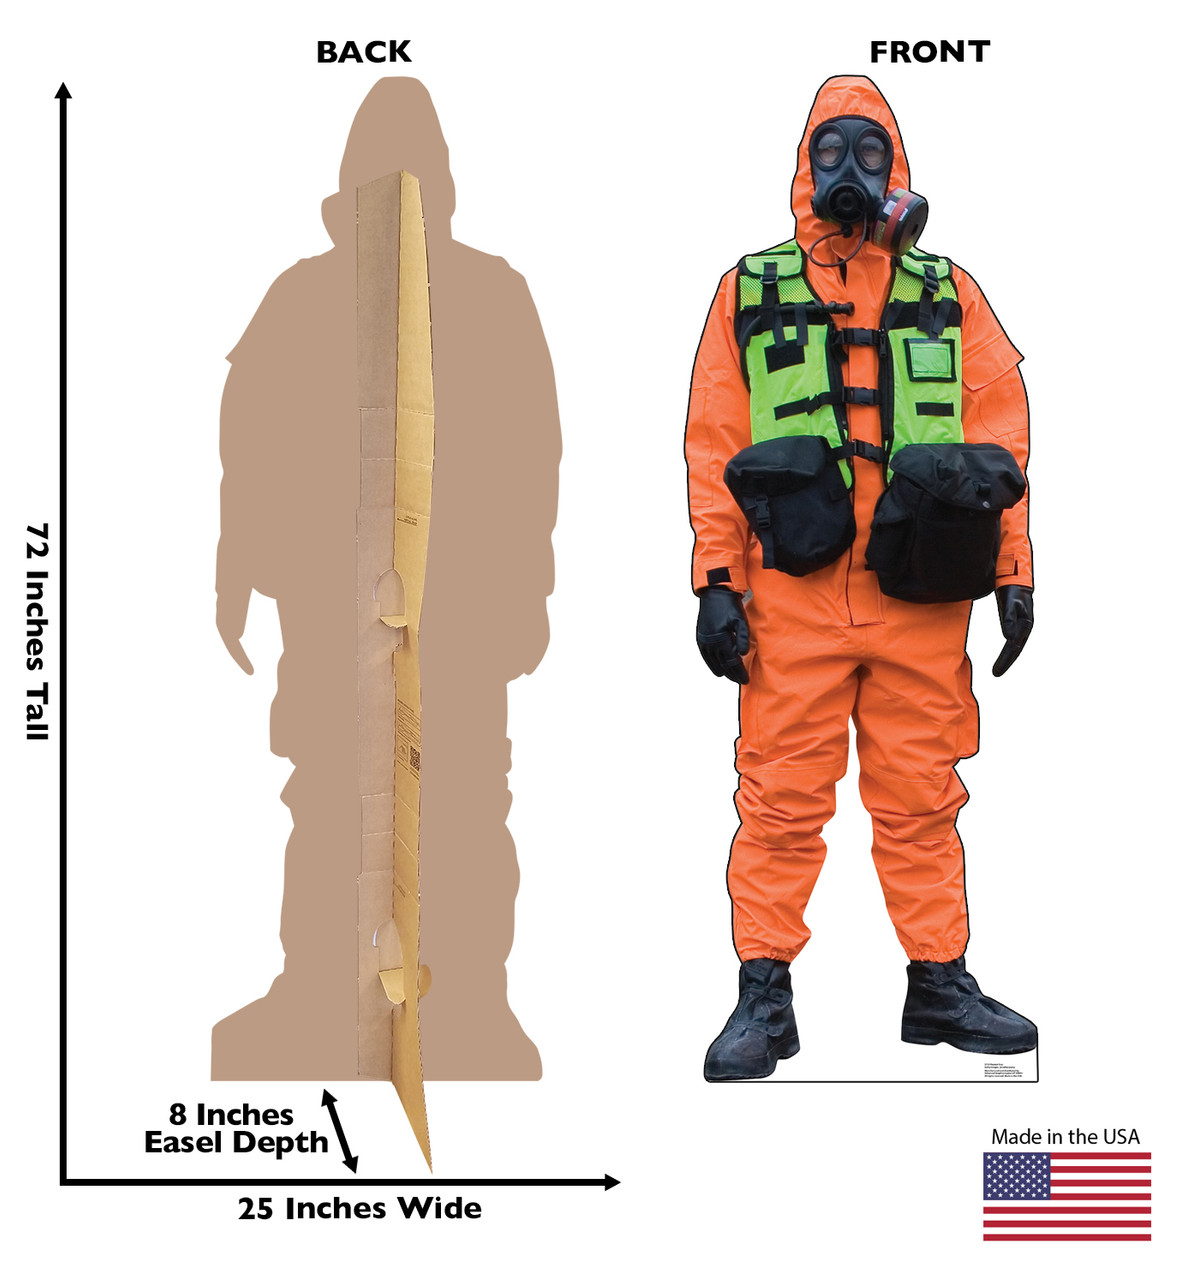 Life-size cardboard standee of a Hazmat Guy with front and back dimensions.